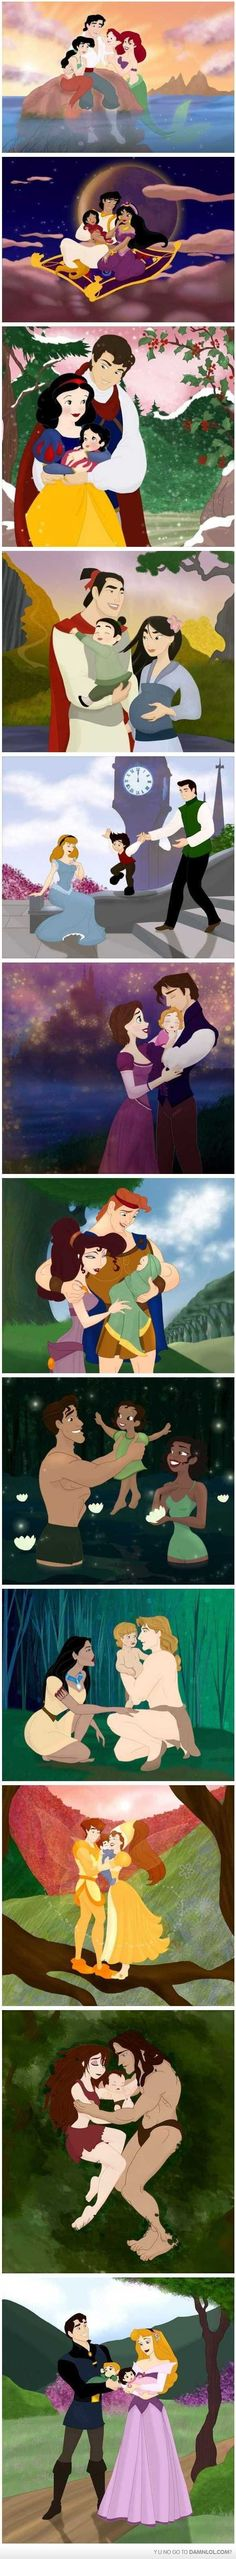 Happily Ever After - Disney Films, What Happened Next this is so great on so many levels